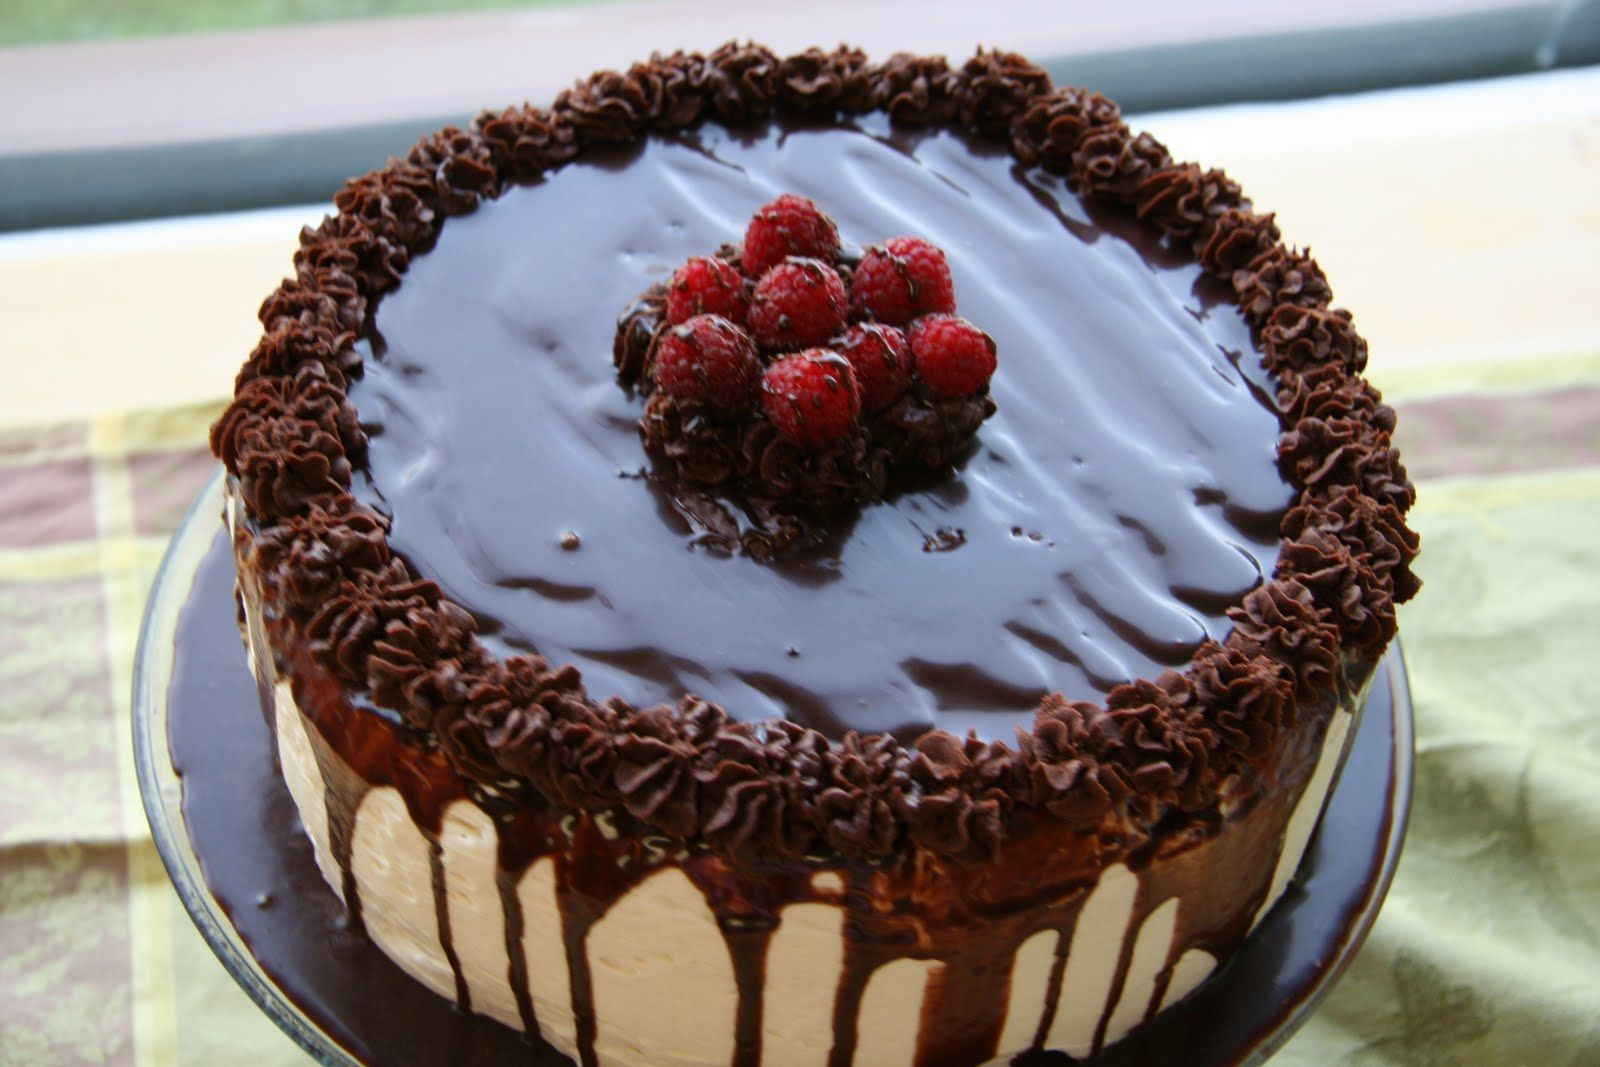 Unbelievable Chocolate Cake With Raspberry Filling | Tasty ...